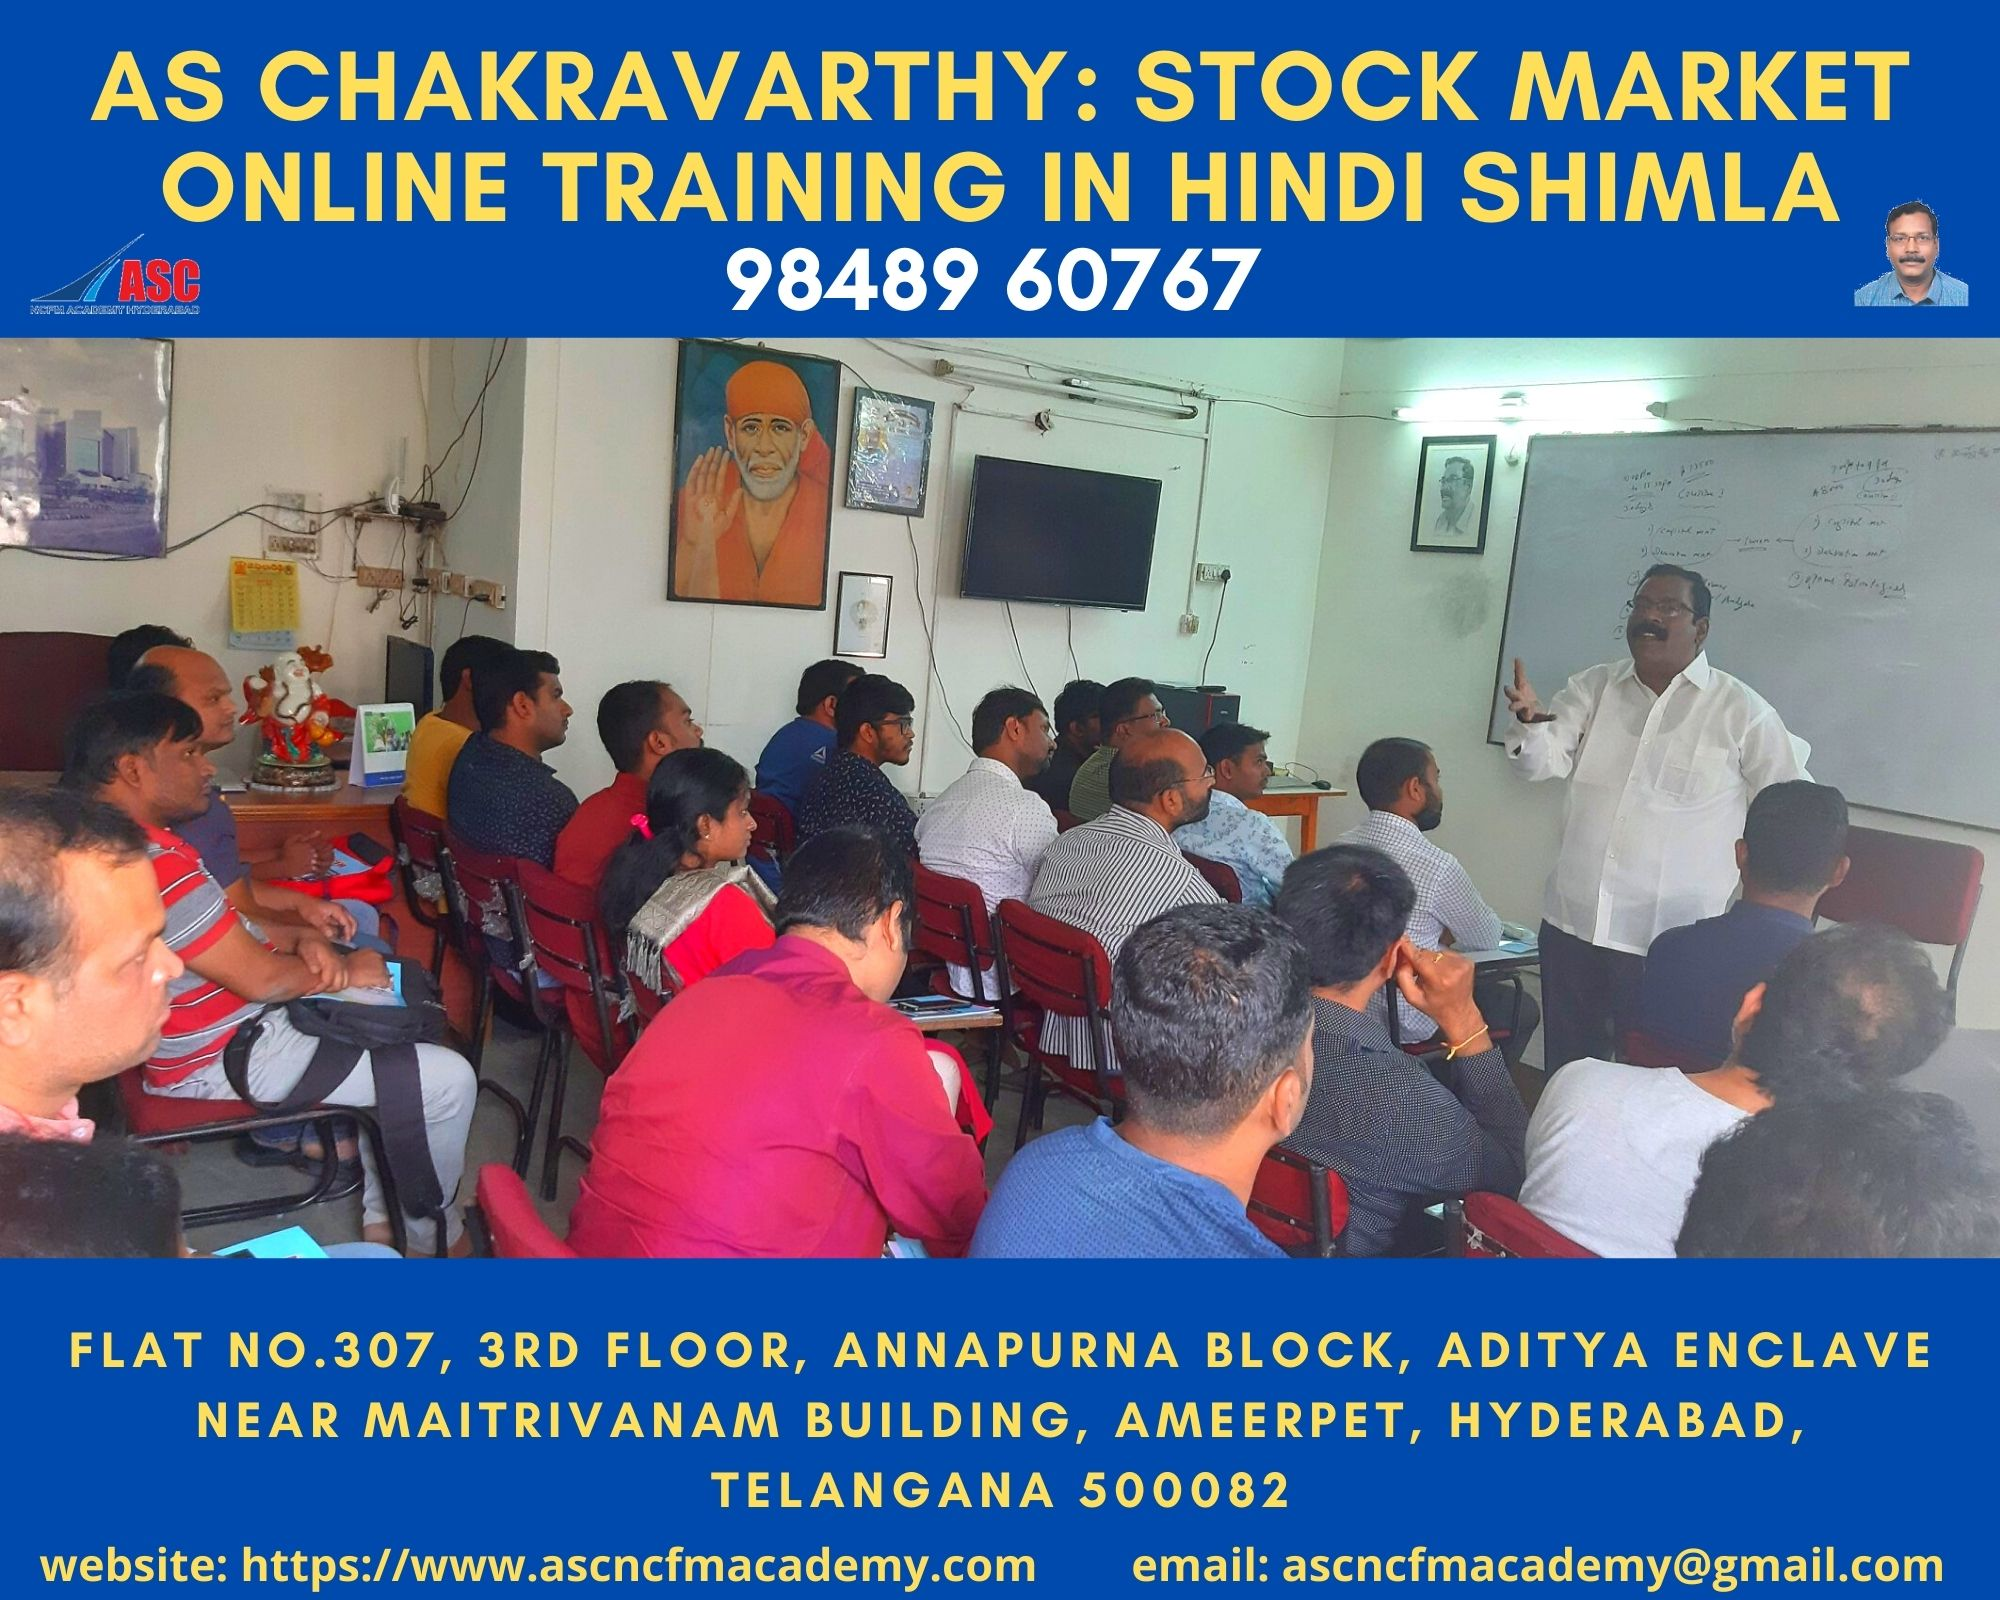 Online Stock Market Technical Training in Hindi Shimla